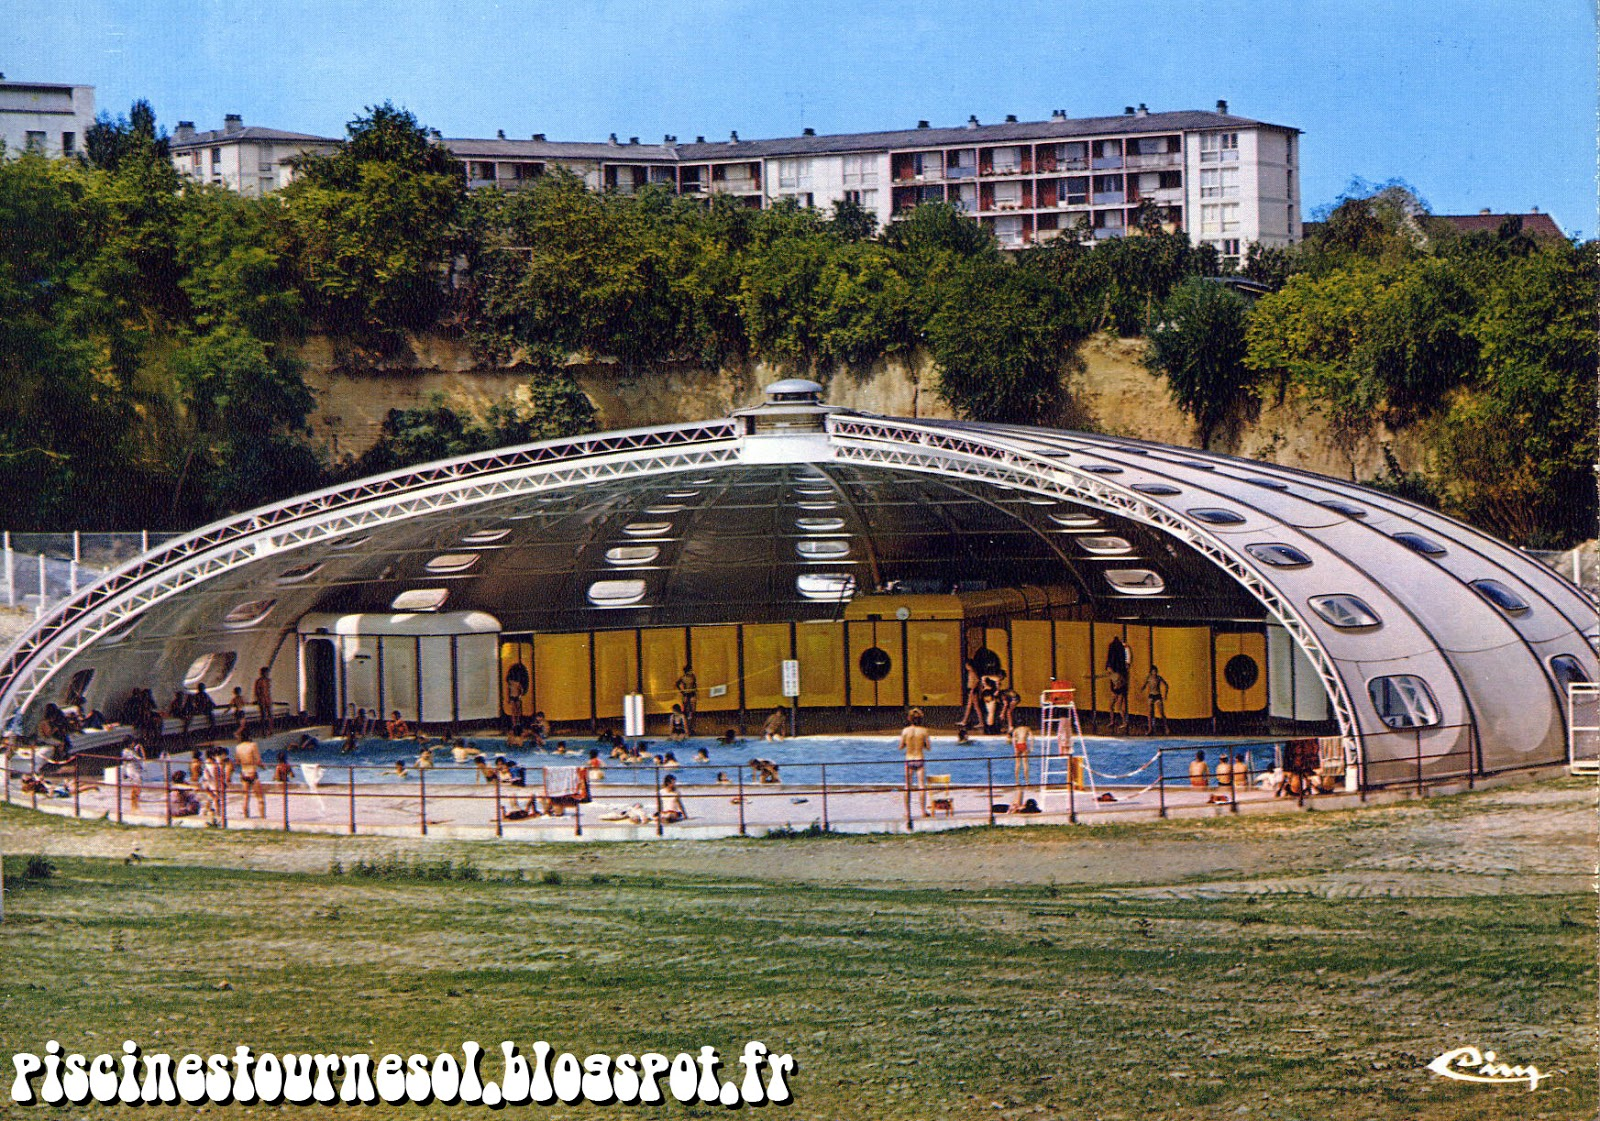 piscines tournesol piscine tournesol saint florentin